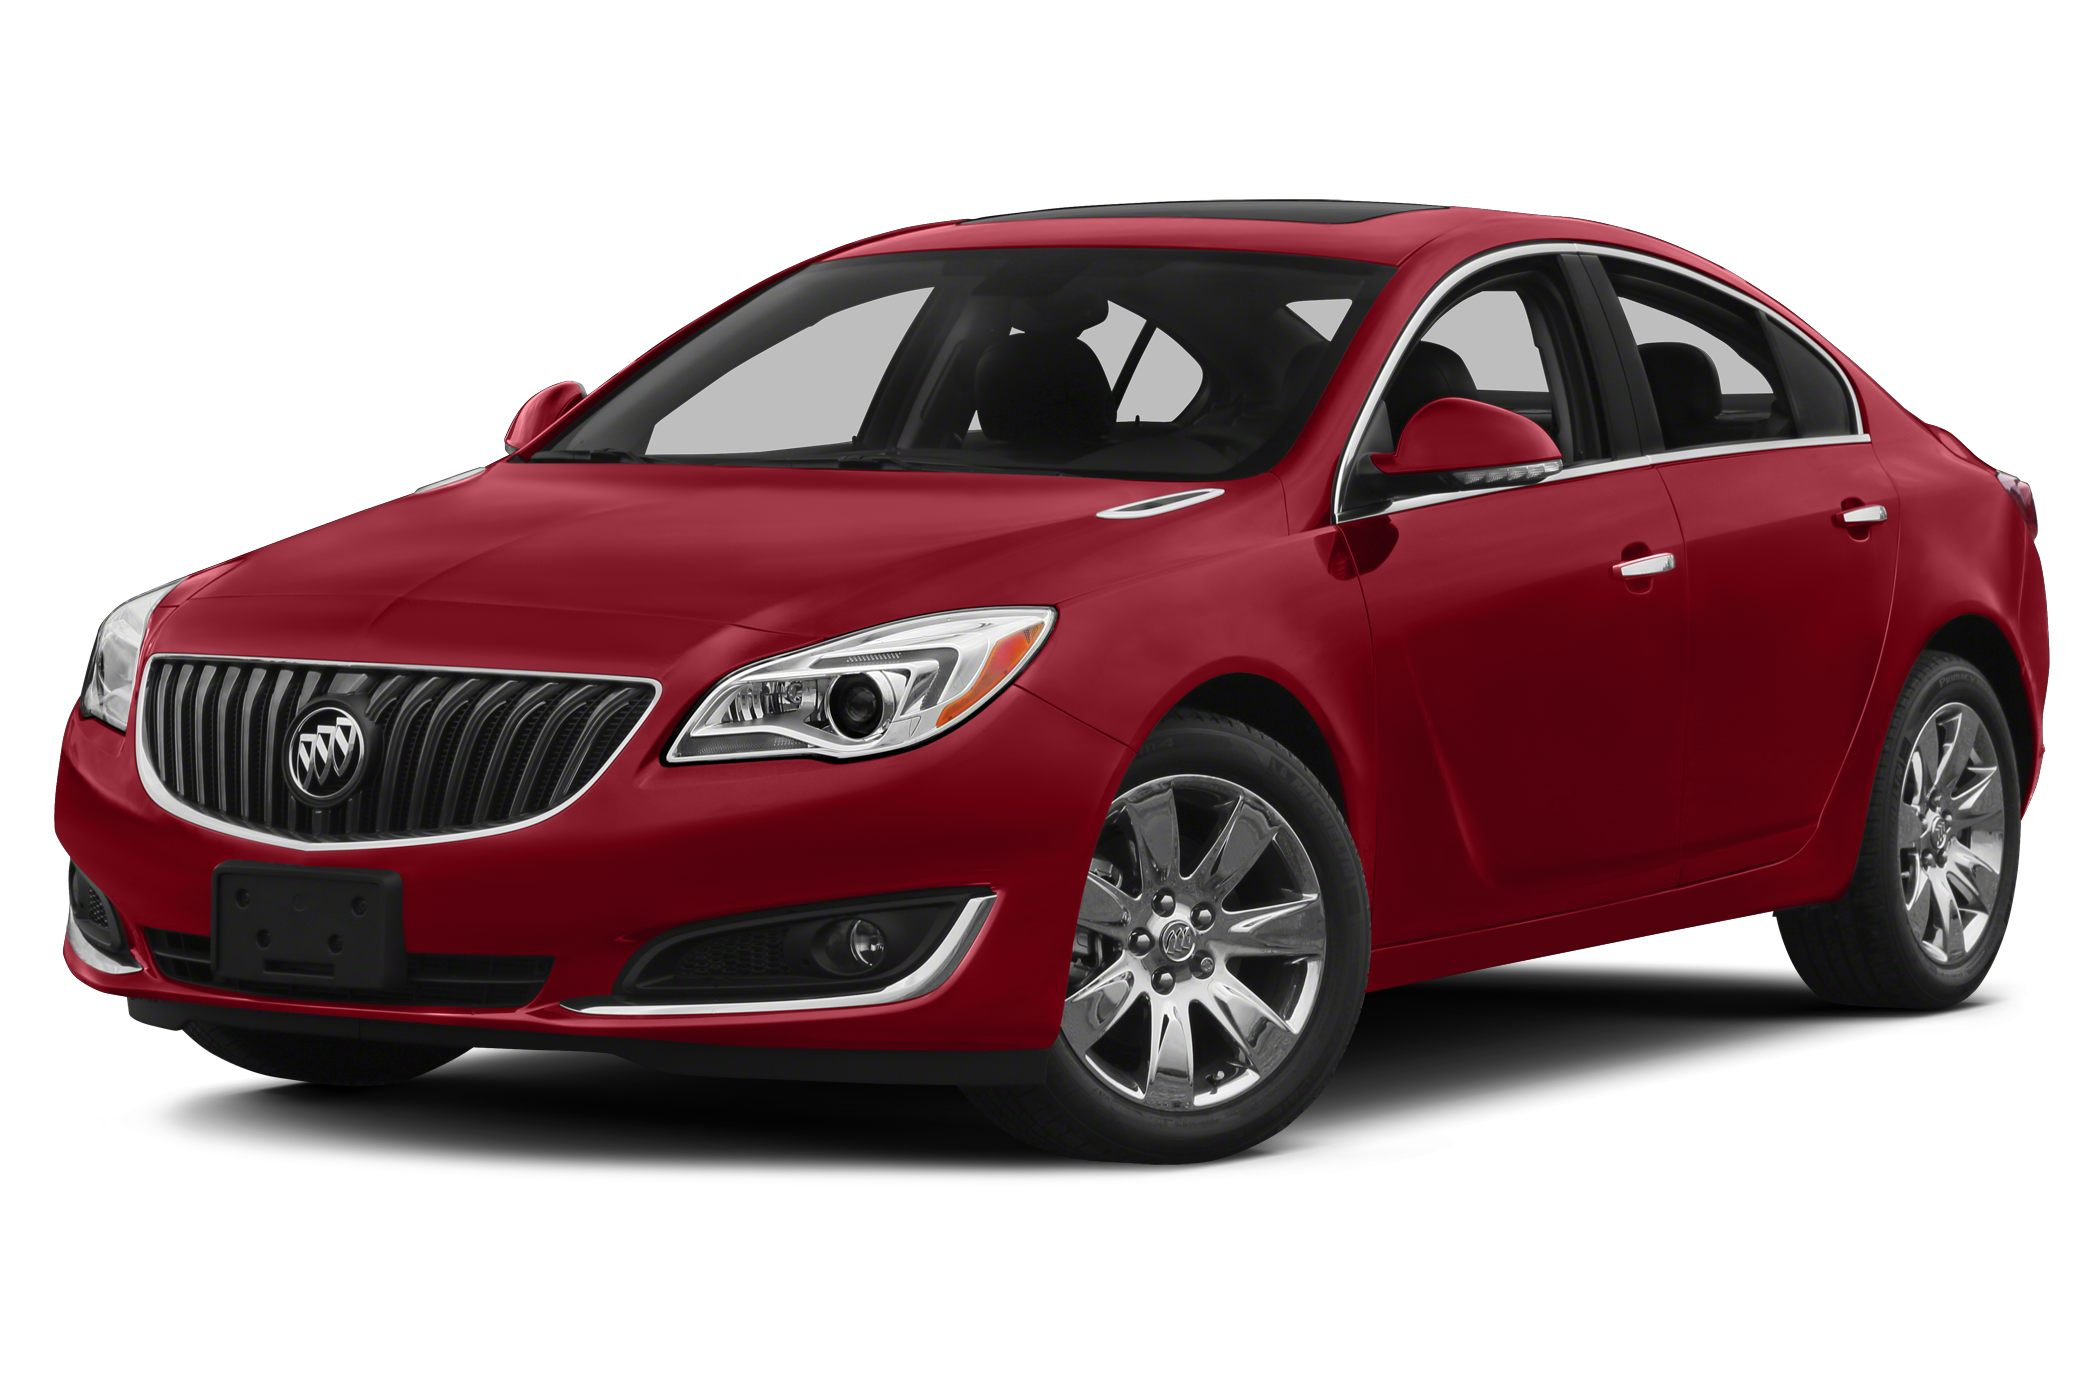 2015 Buick Regal Turbo Sedan for sale in Lockport for $33,340 with 1 miles.